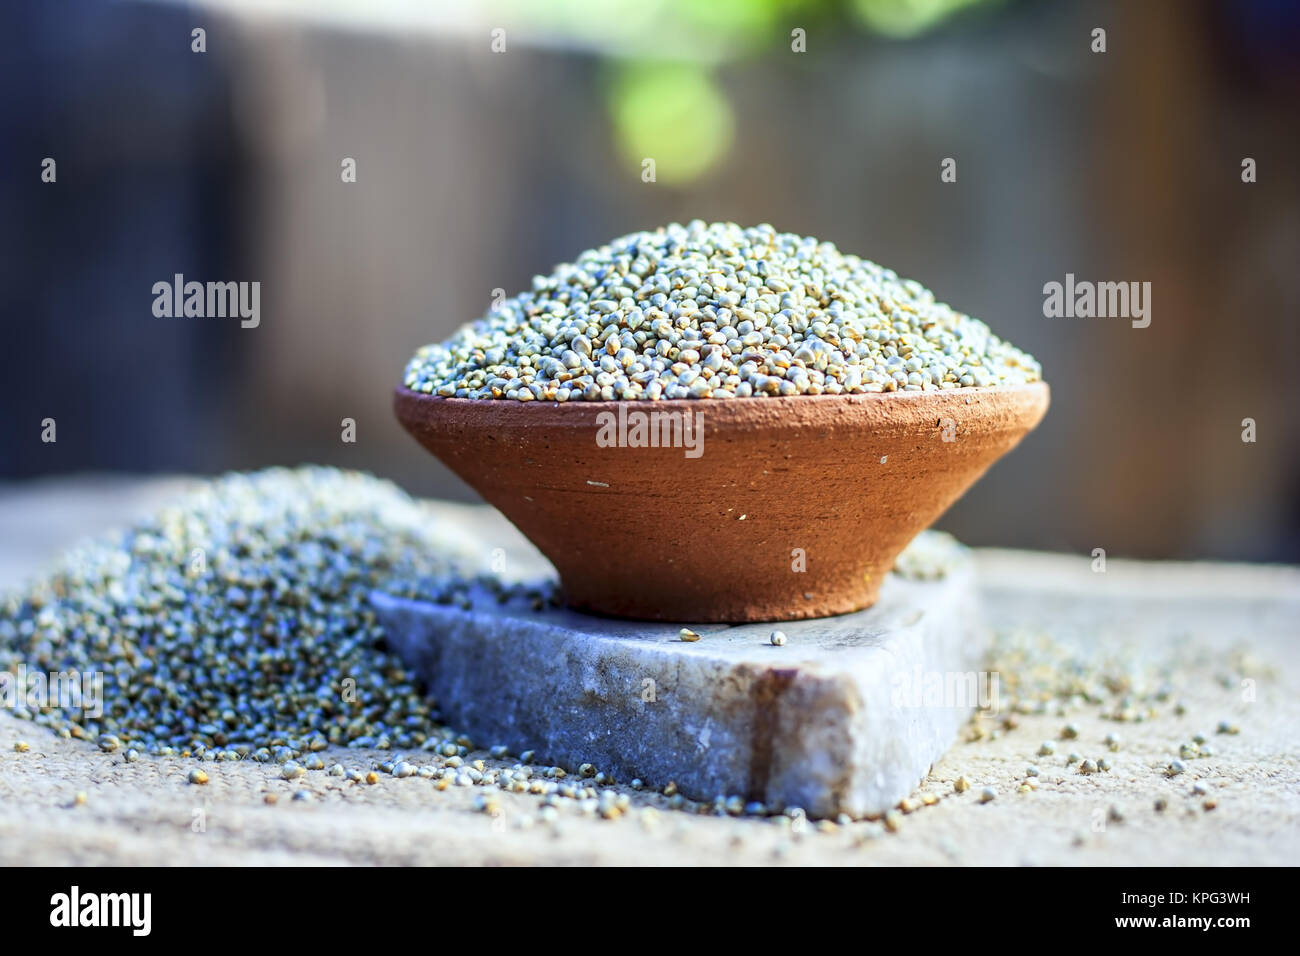 Raw organic Pennisetum glaucum,Bajra pearl millet in a clay bowl. - Stock Image